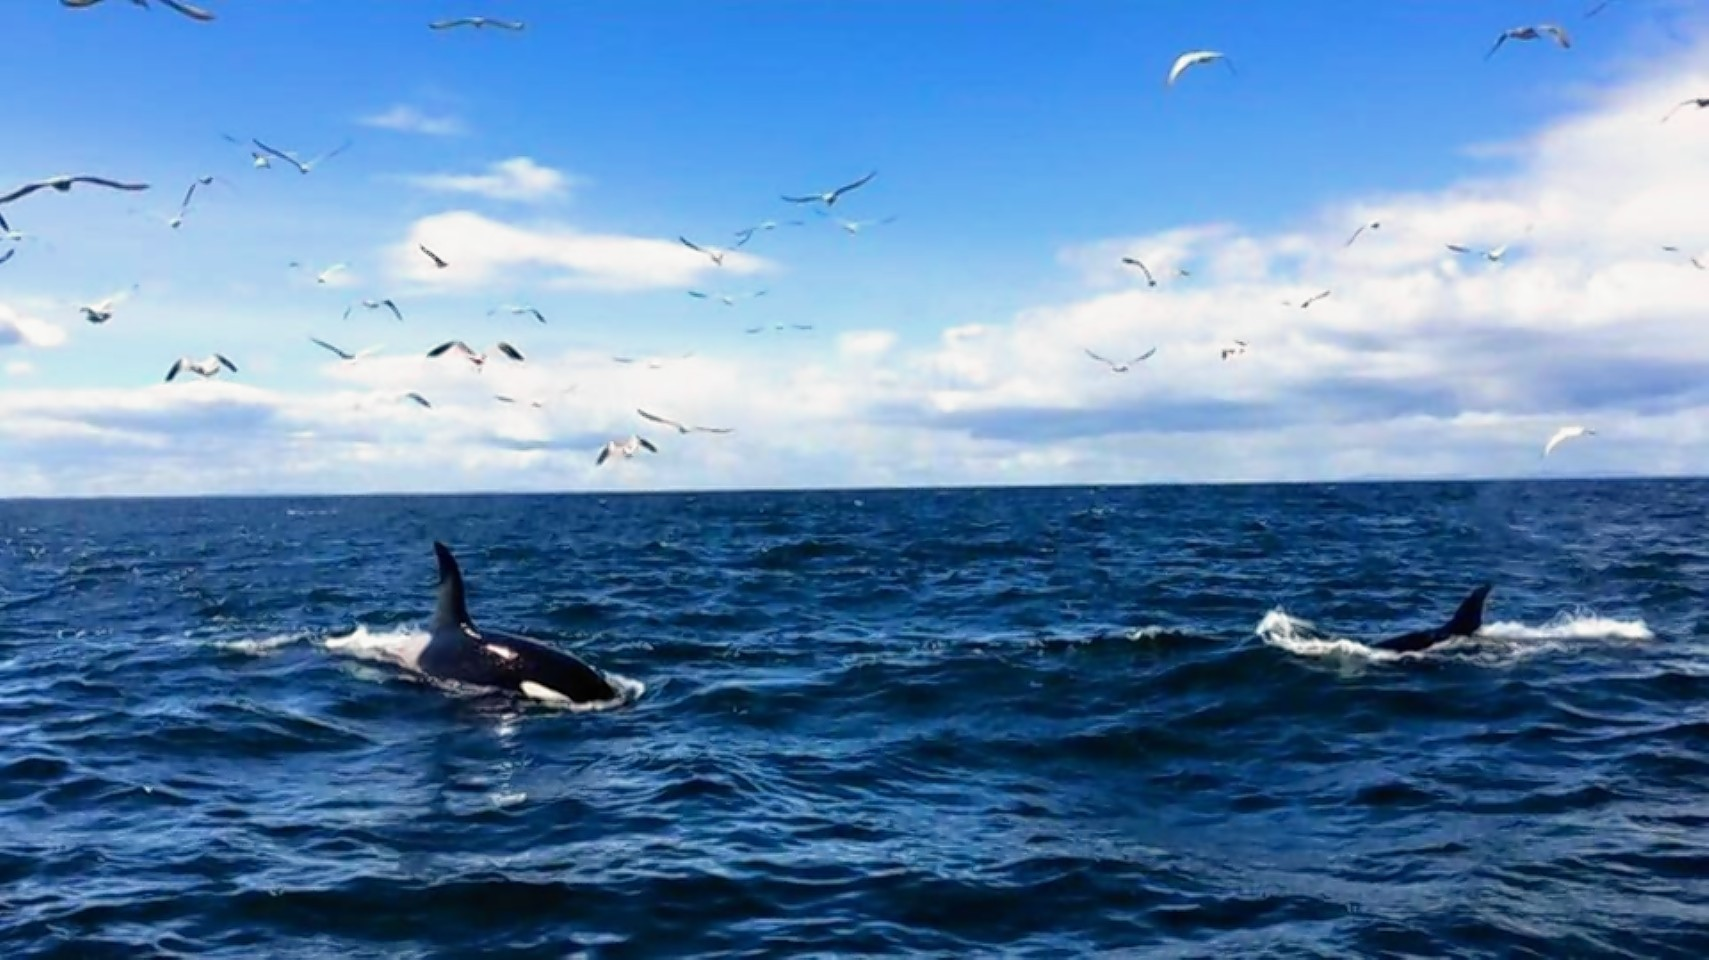 The killer whales were spotted off Portknockie